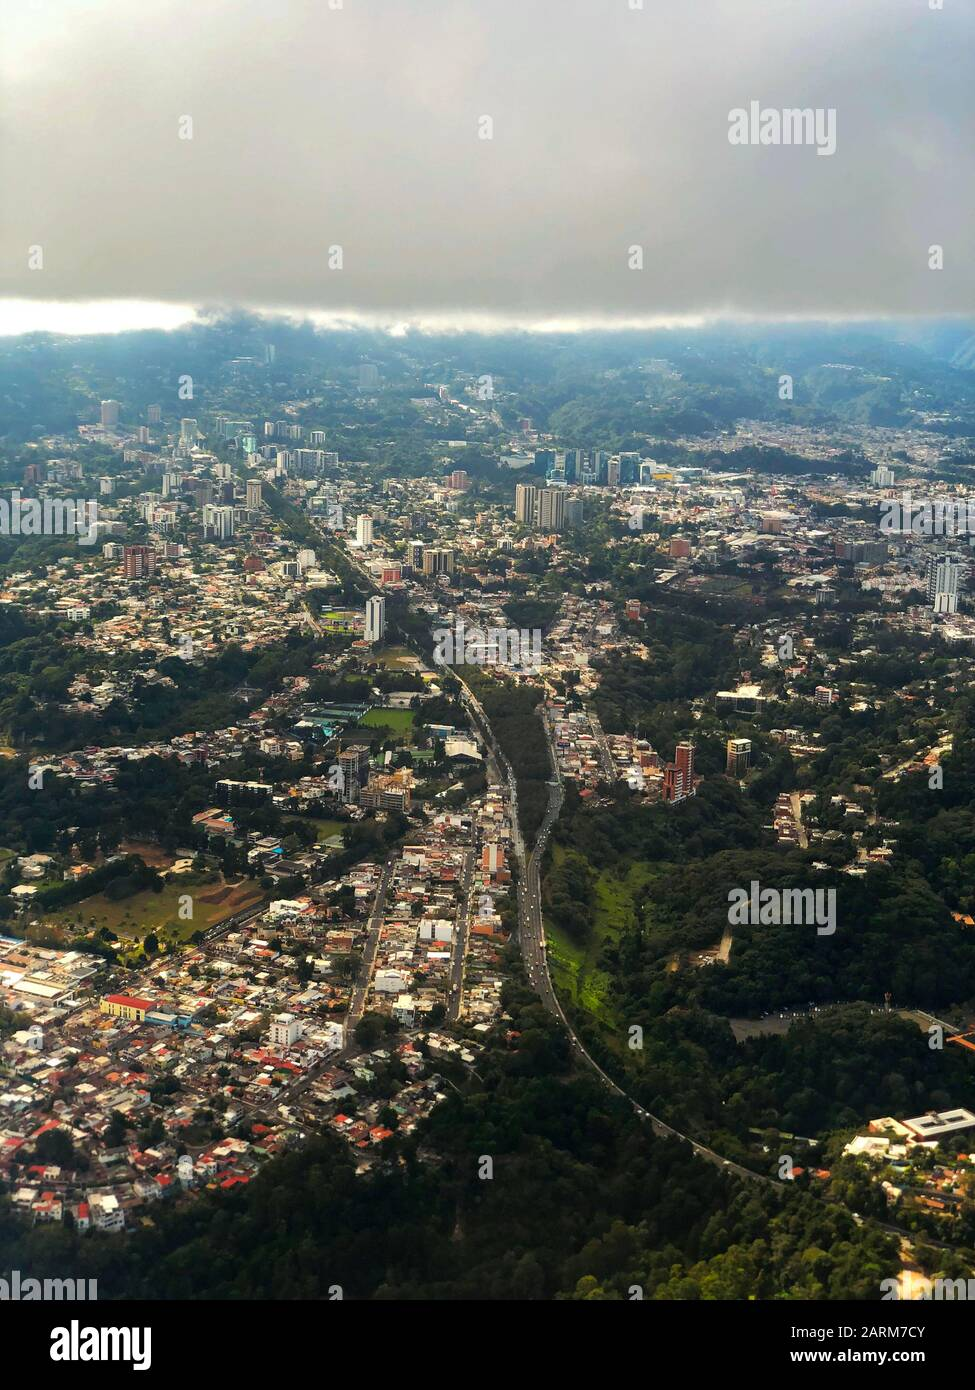 An aerial view of Guatemala City Stock Photo